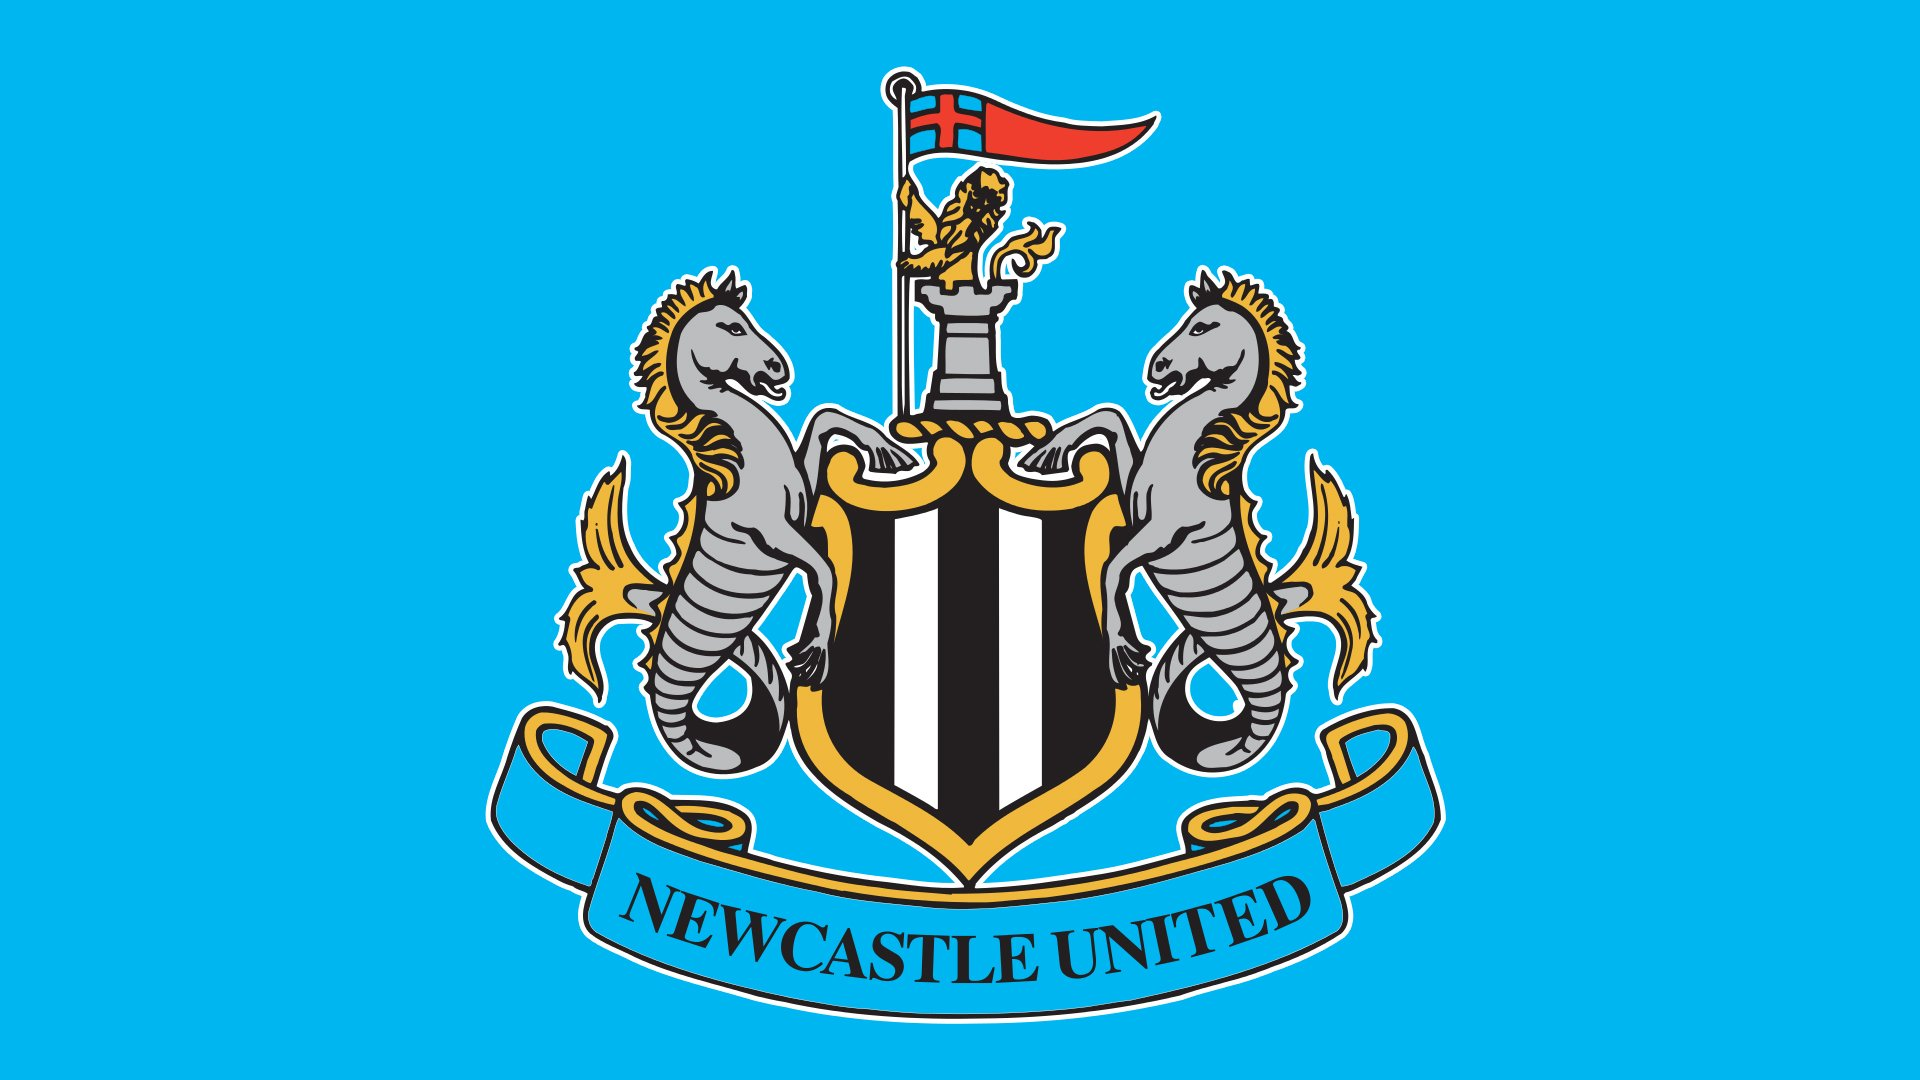 Newcastle United logo and symbol, meaning, history, PNG